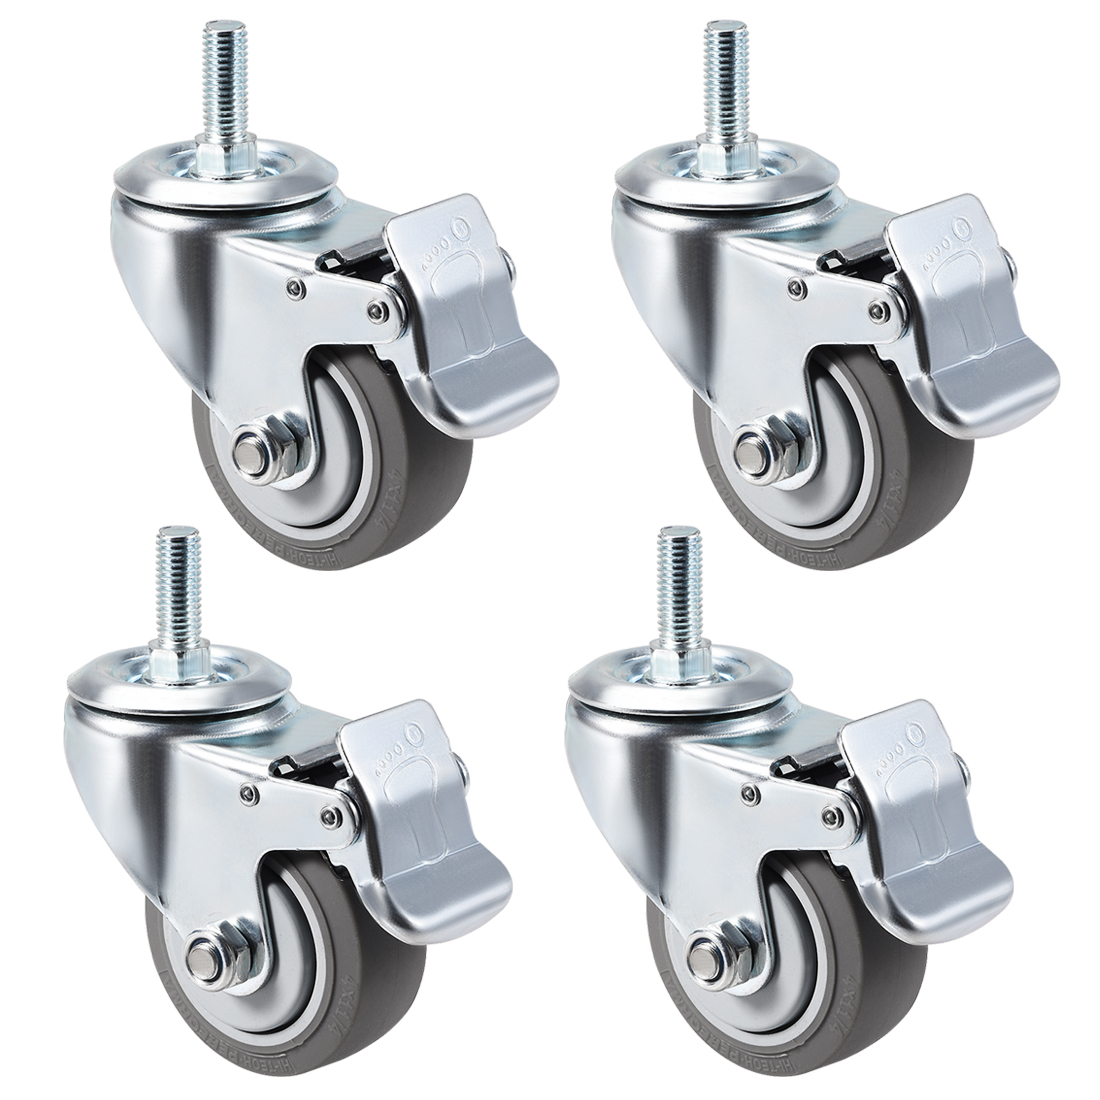 Swivel Caster Wheels TPR Caster 4 Inch Wheel M12 x 30mm Thread with Brake , 4pcs